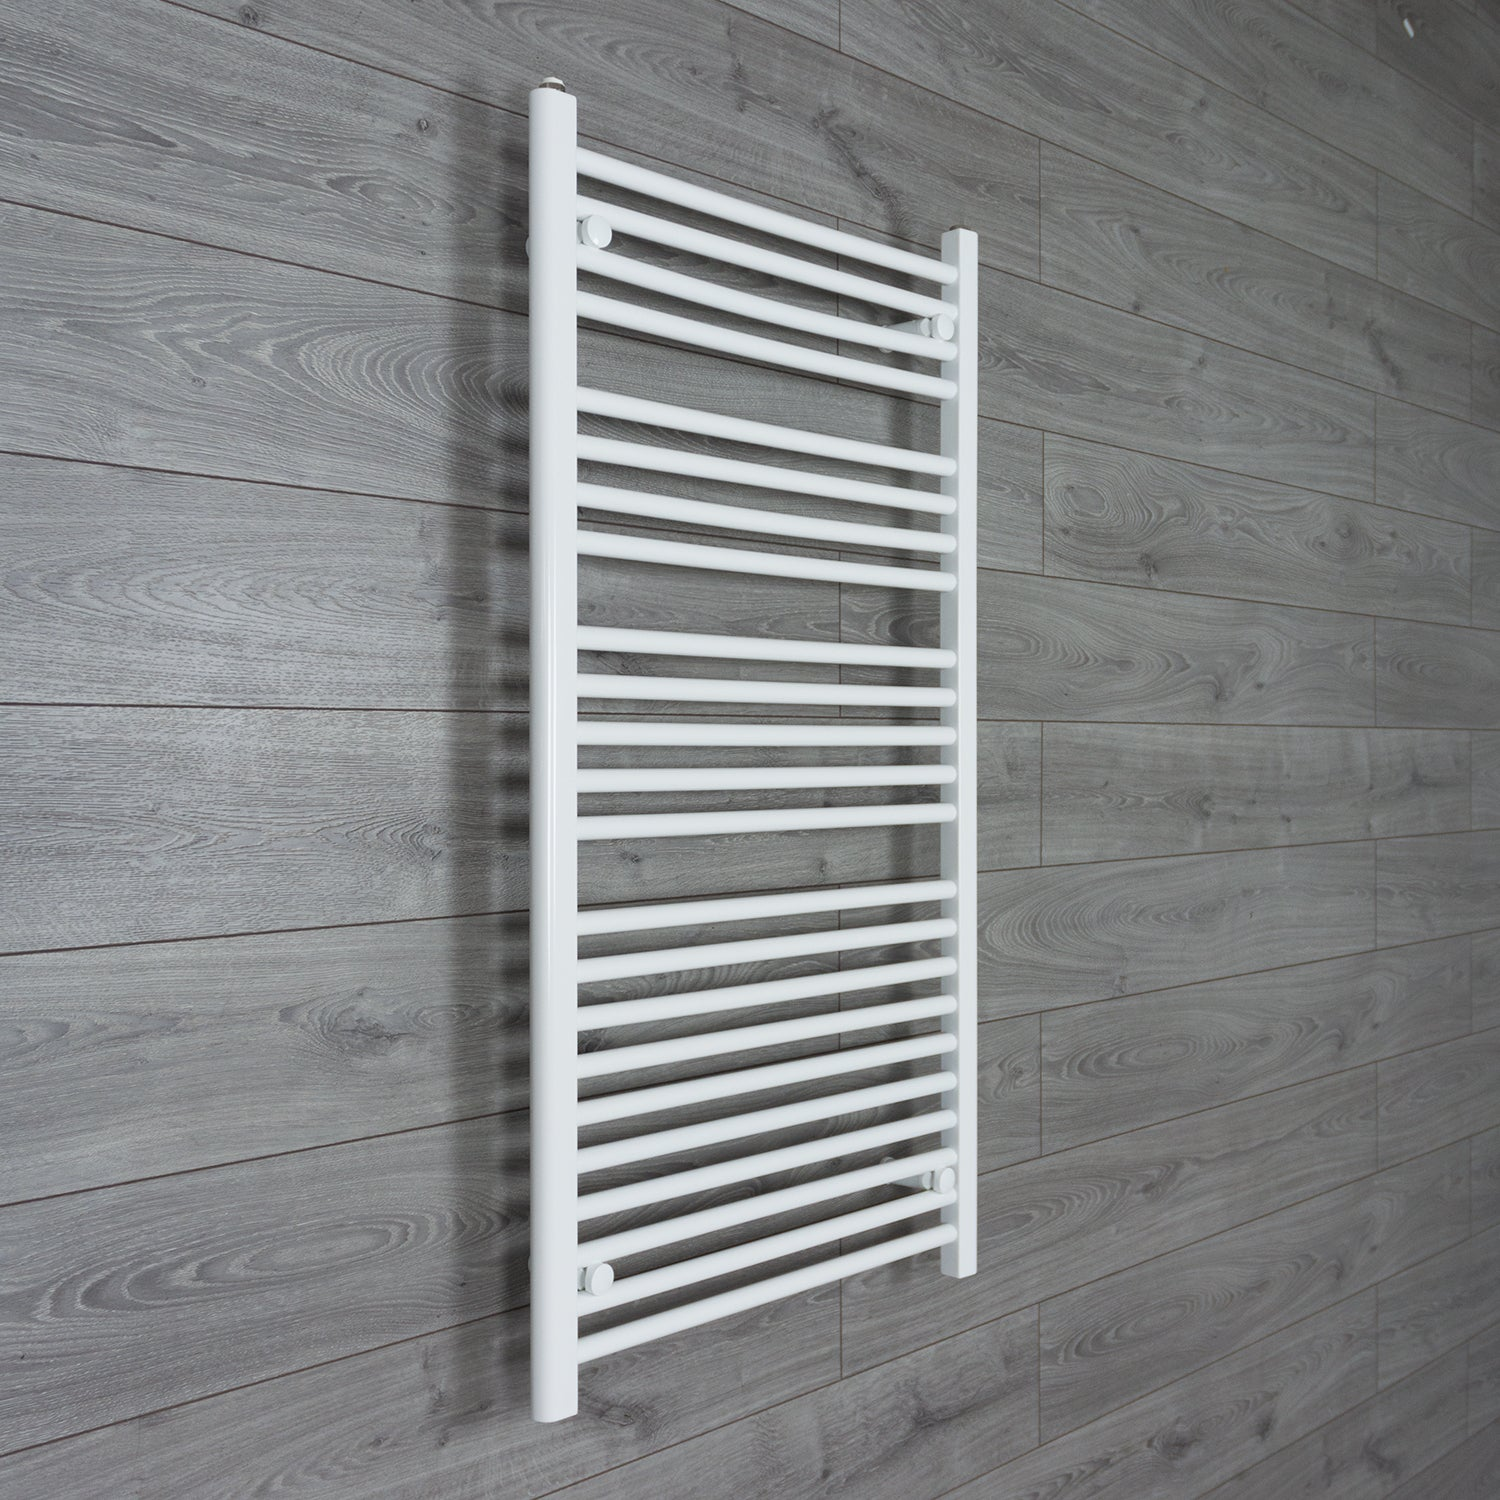 650mm Wide 1200mm High White Towel Rail Radiator